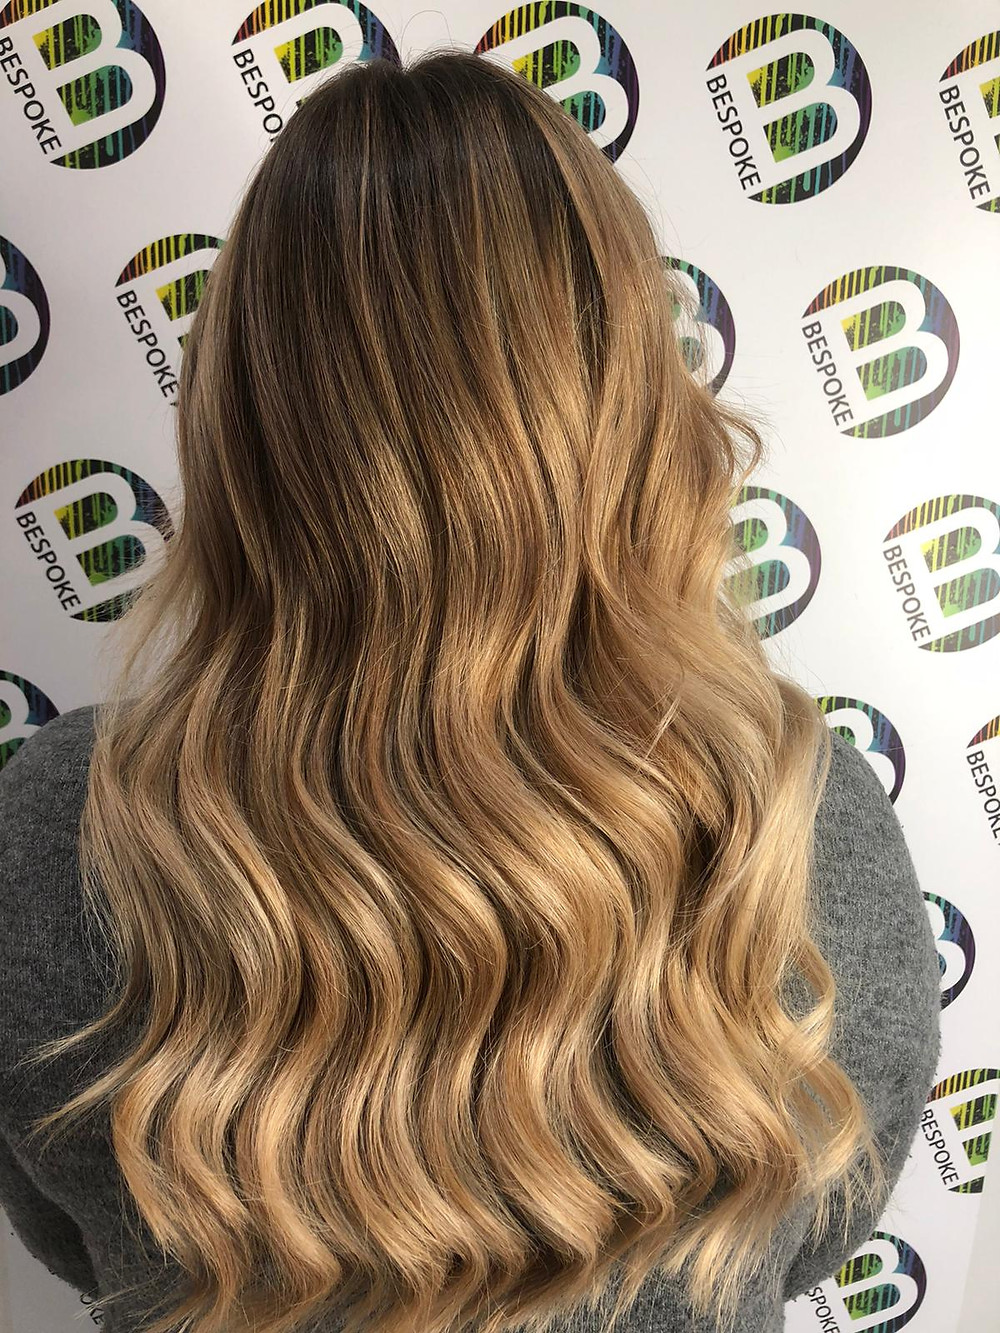 Butterscotch Delight Balayage at Bespoke Salon Dunfermline